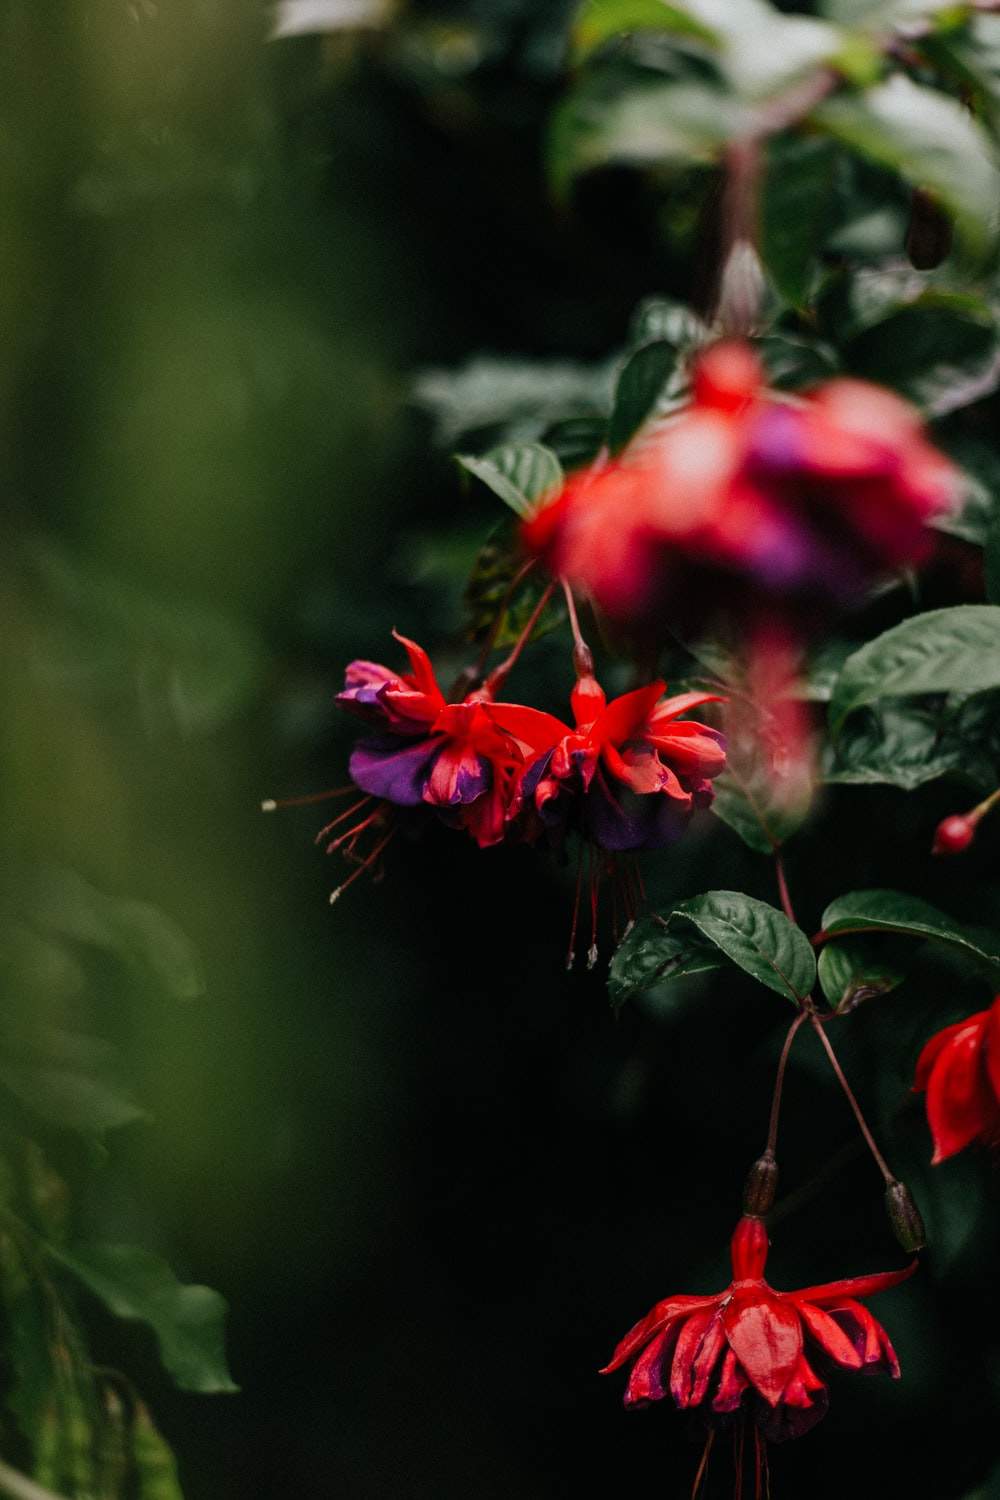 closeup photography of red-and-purple fuchsia flower